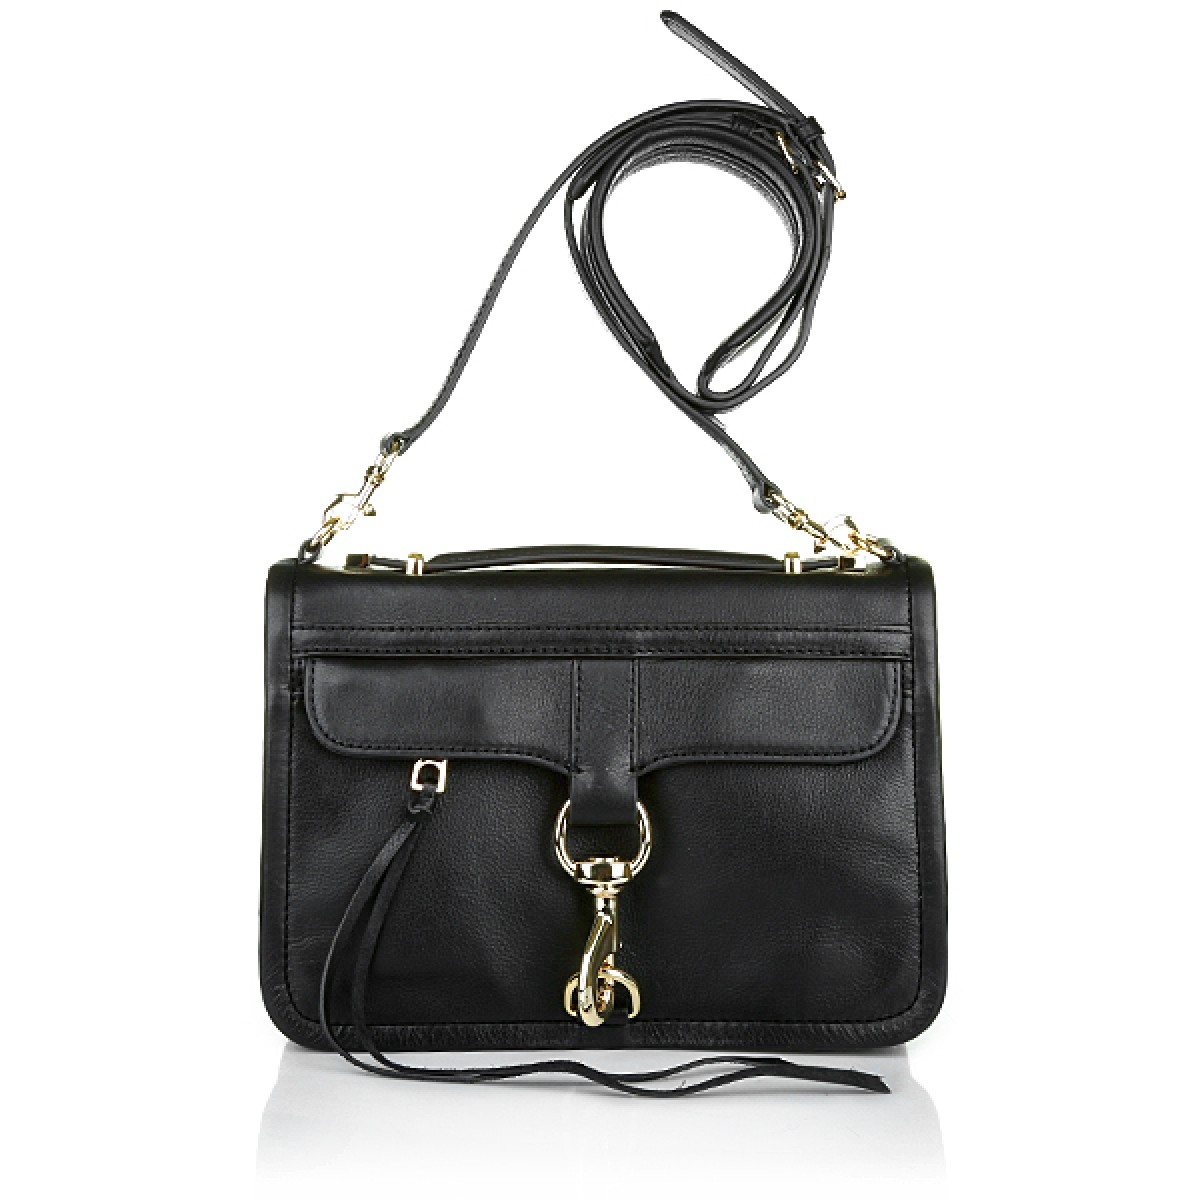 Rebecca minkoff bowery crossbody black cross body bags bei fashionette